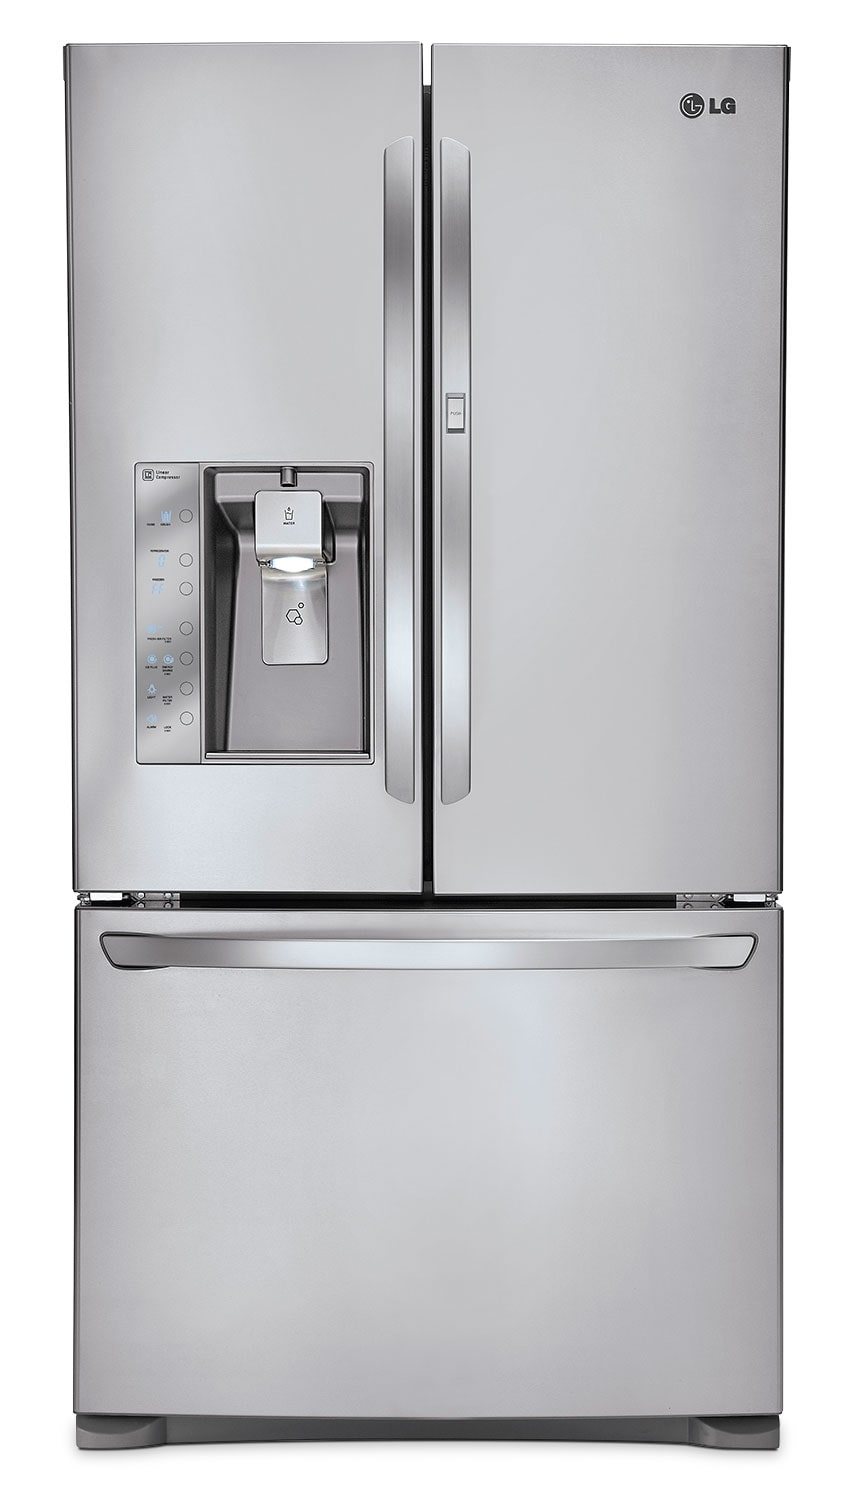 Refrigerators and Freezers - LG Appliances Stainless Steel French Door Refrigerator (23.8 Cu. Ft.) - LFXC24766S